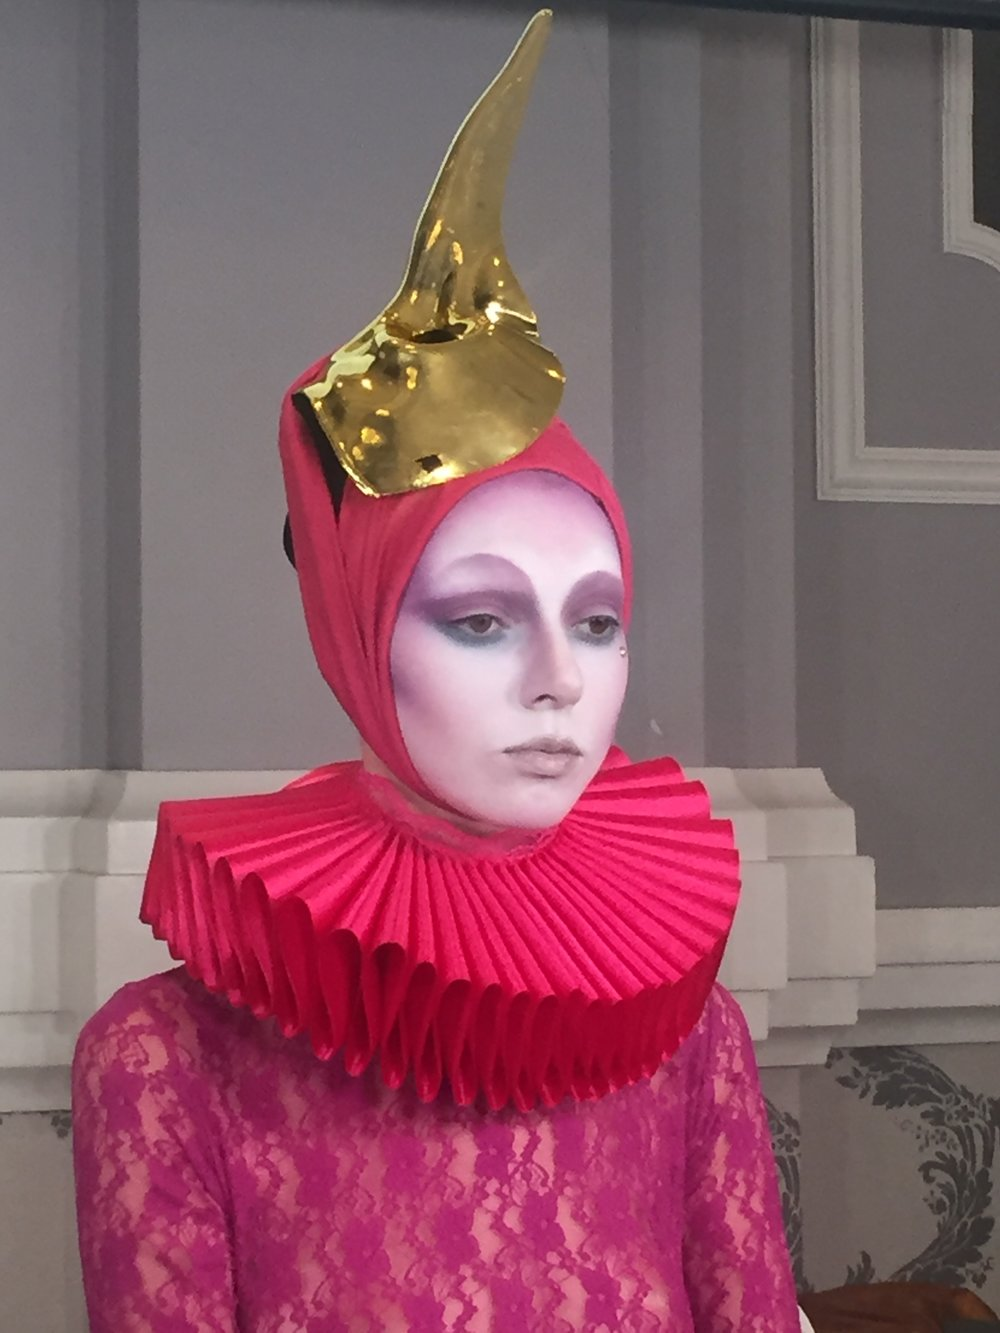 One of the three Roshar avant-garde looks he did